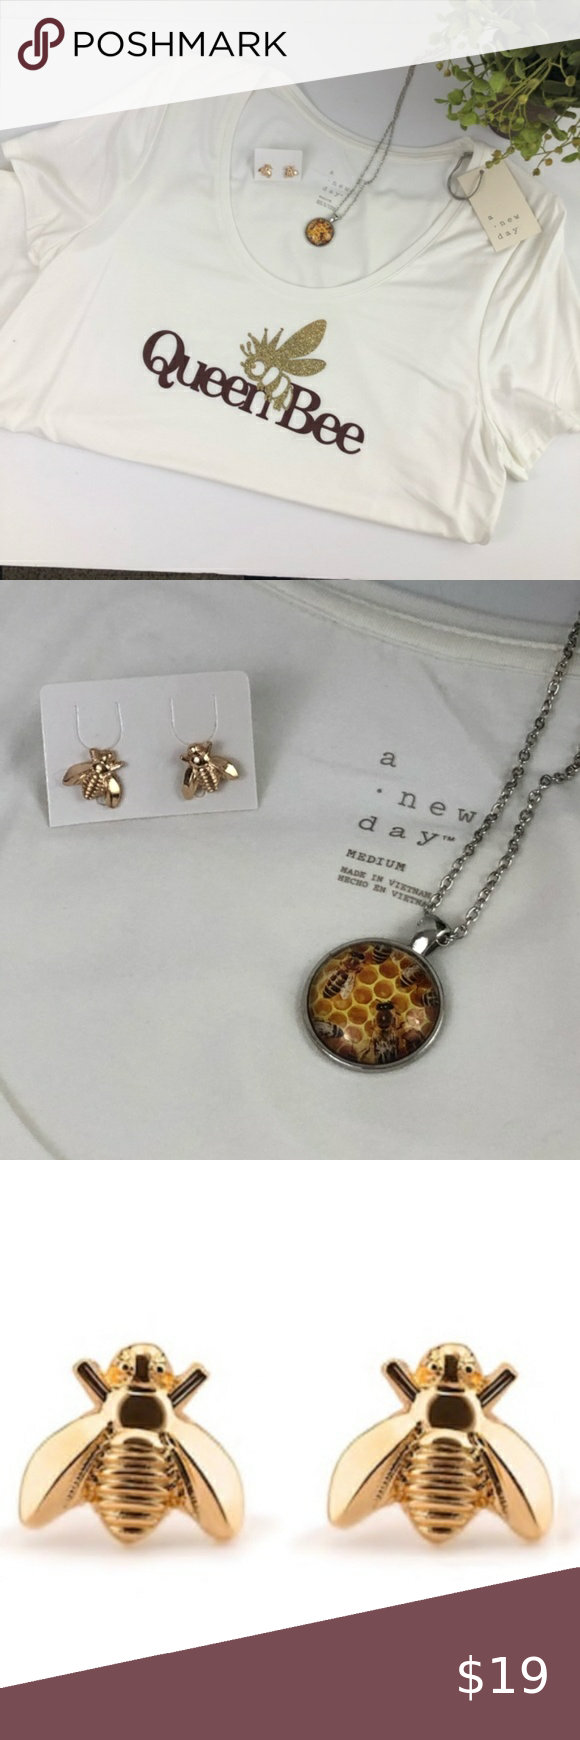 Photo of NEW Bundle Gold Queen Bee Shirt Necklace Earrings Dainty Bee Stud Earrings. Gold…